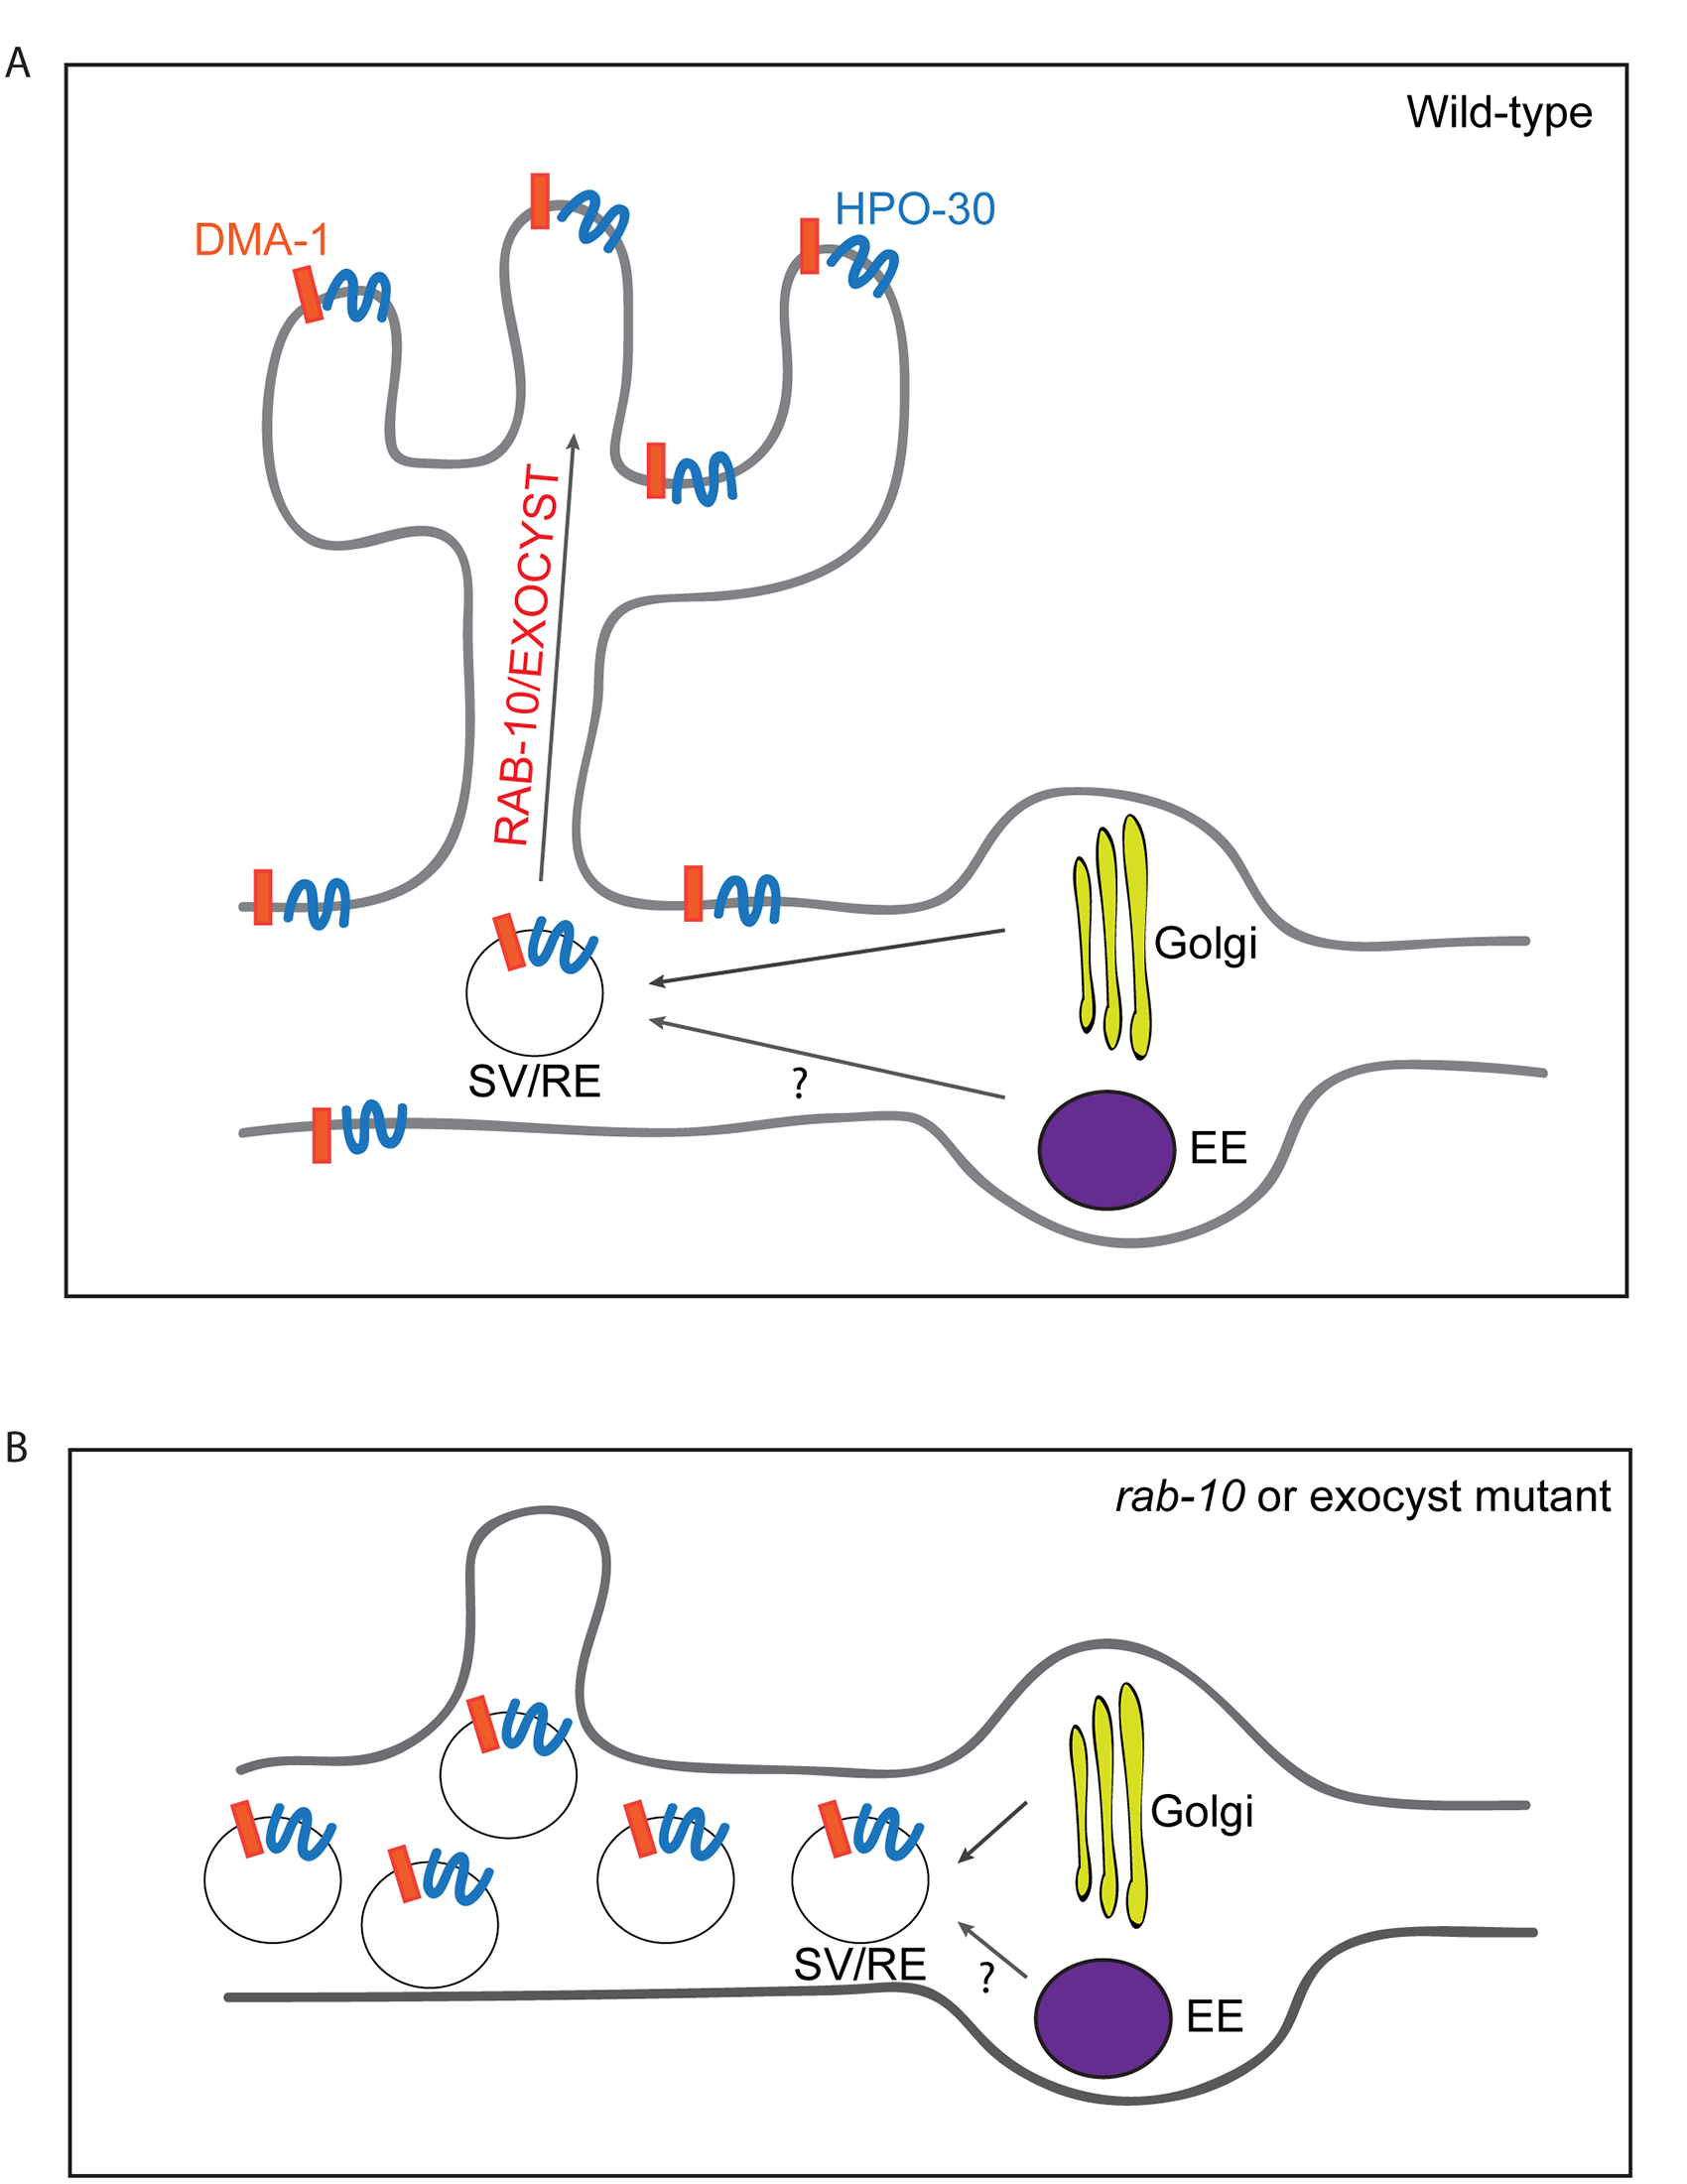 A summary model of how RAB-10 and exocyst complex function during dendrite arborization.